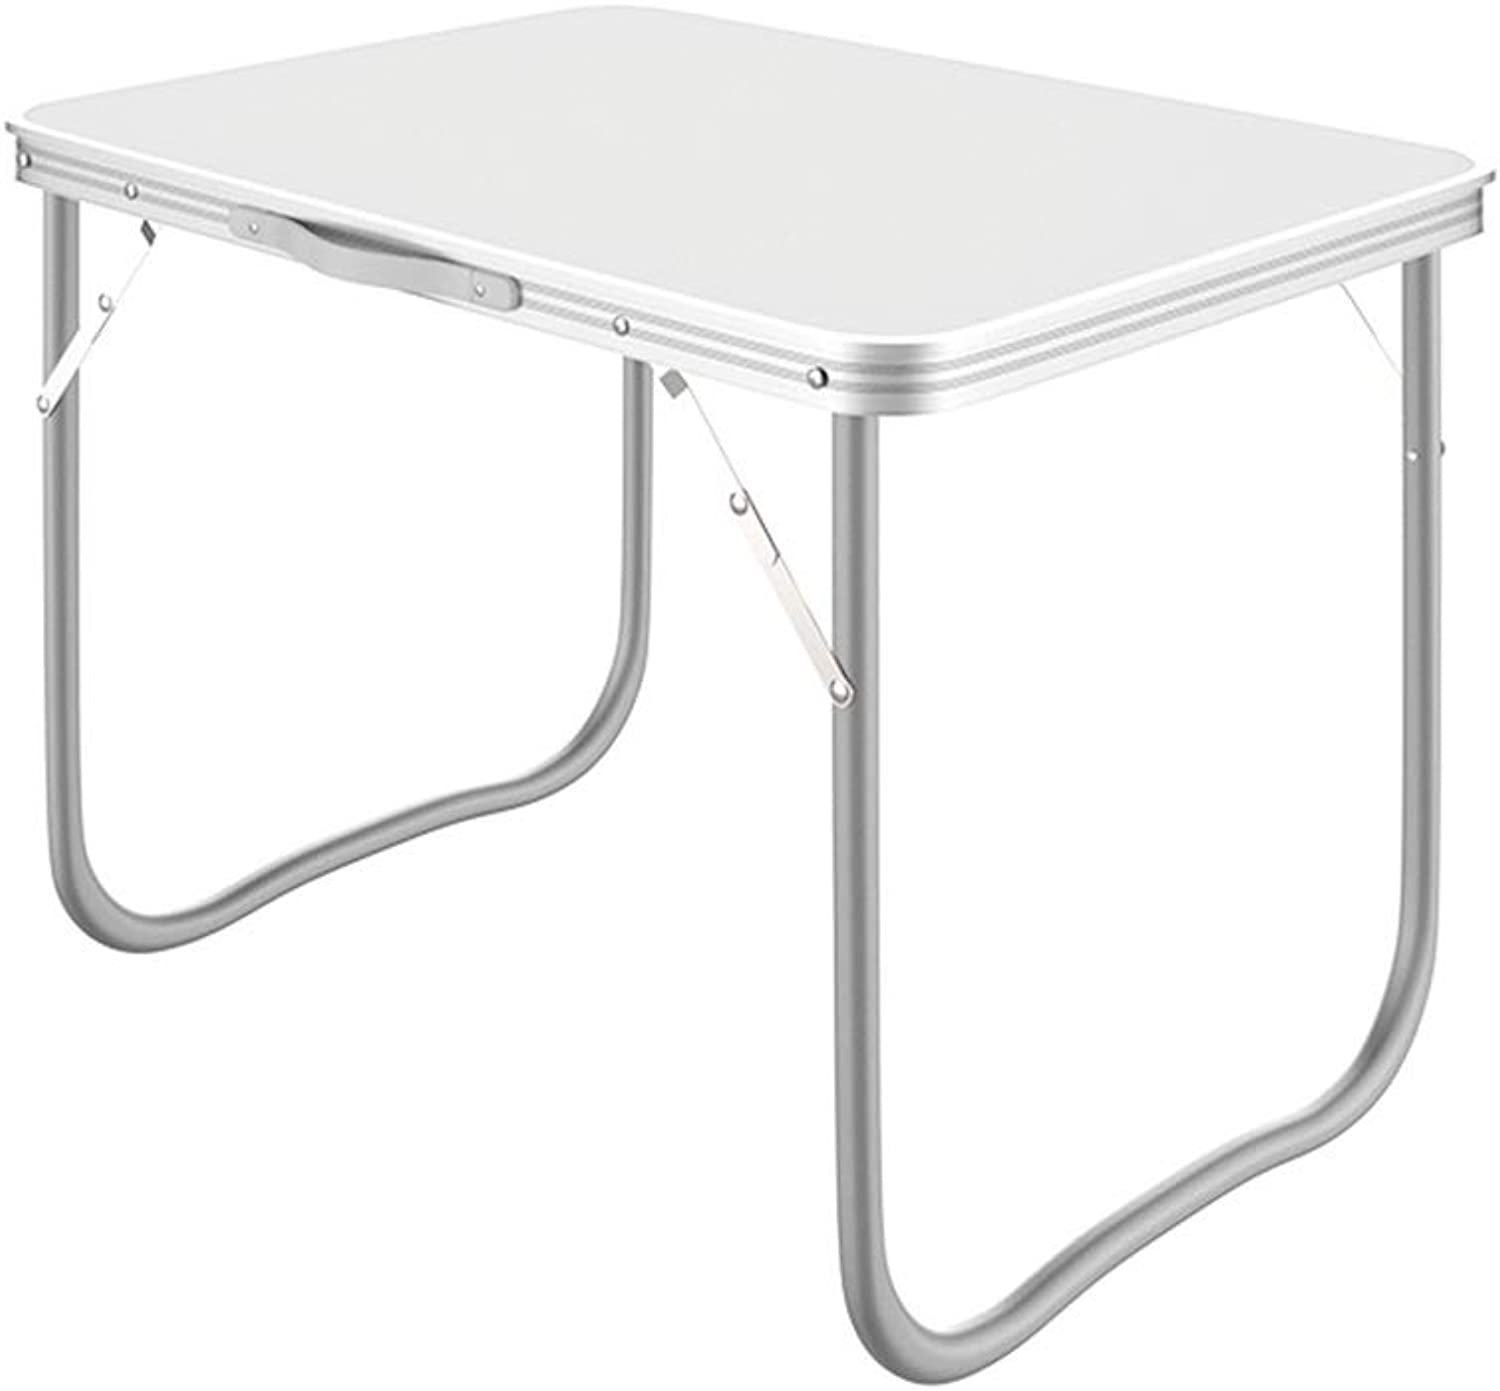 ZZHF zhuozi Folding Table, Dining Table, Portable Table, Writing Desk, with A Cloth Stool Suitable for Home Simple Table (White) 80  60cm 31.5 x23.6